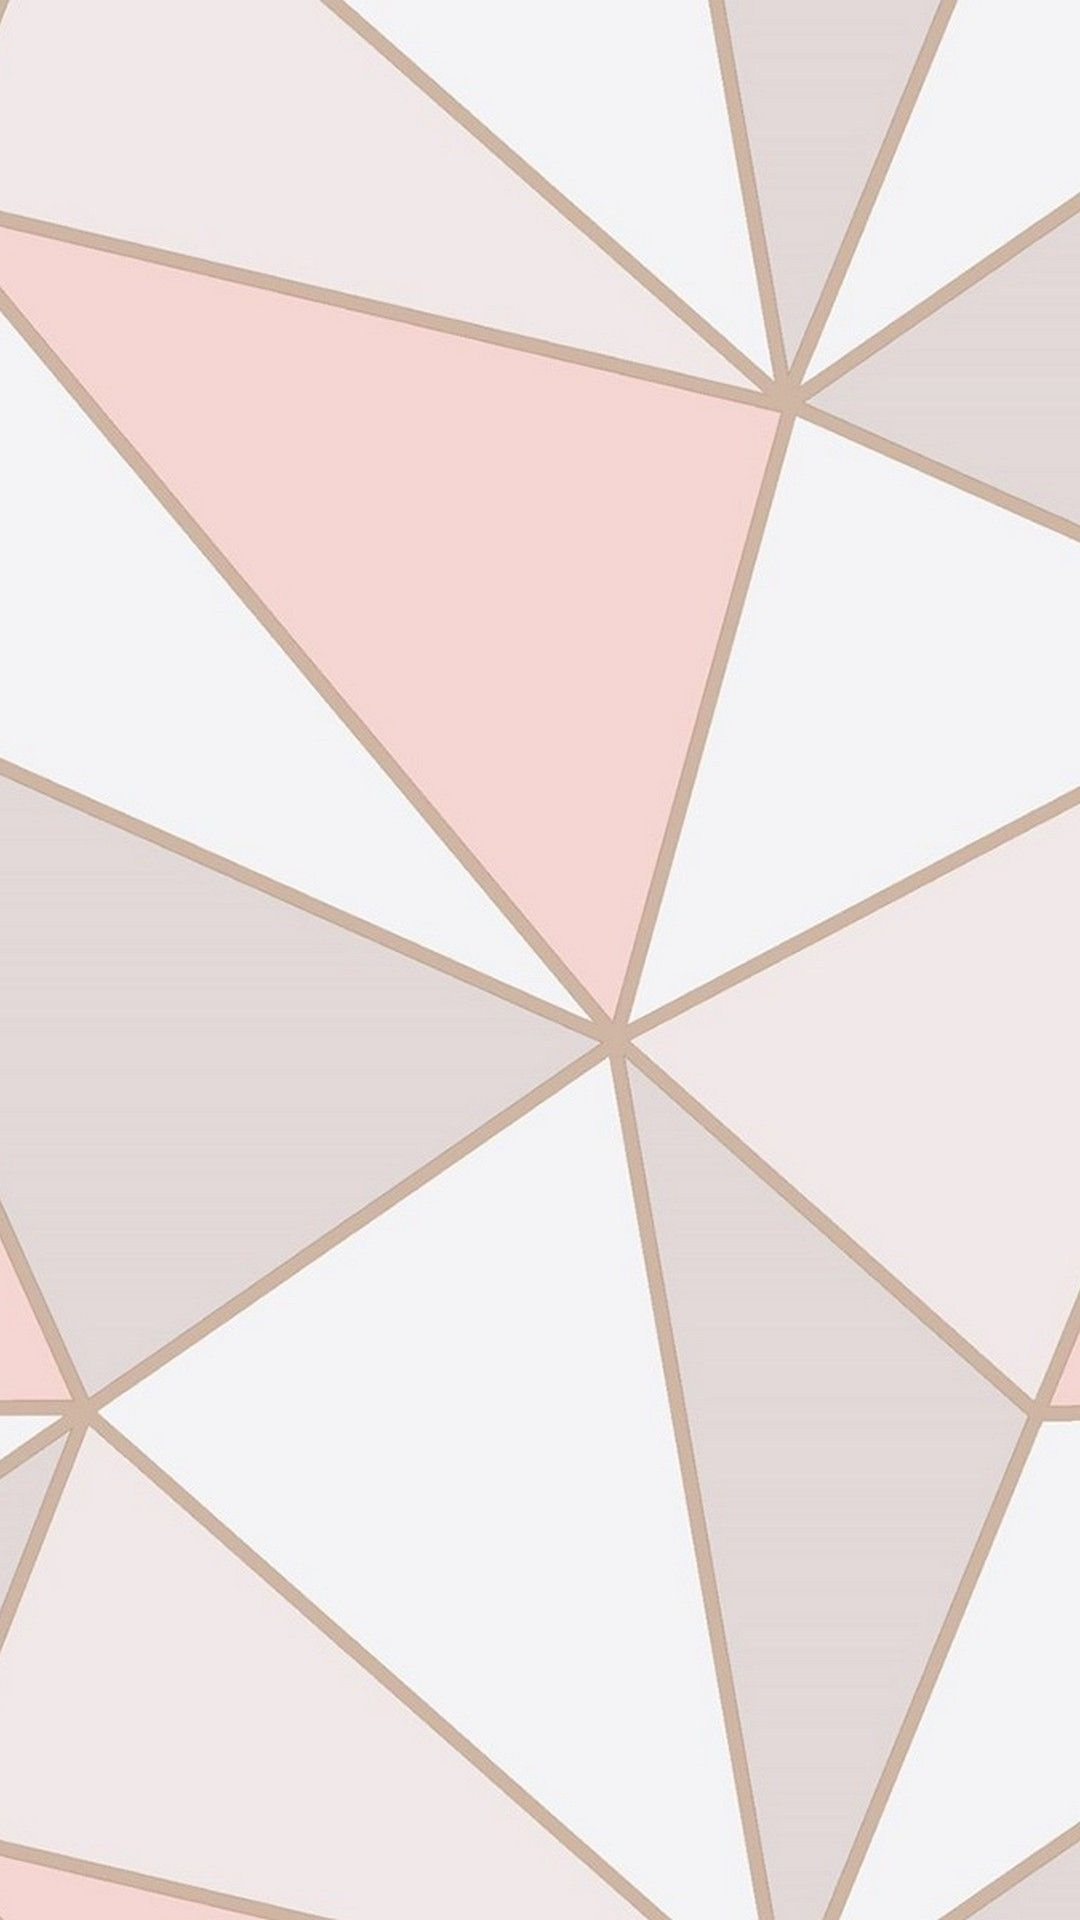 Android wallpaper hd rose gold marble best android - Iphone wallpaper rose gold ...